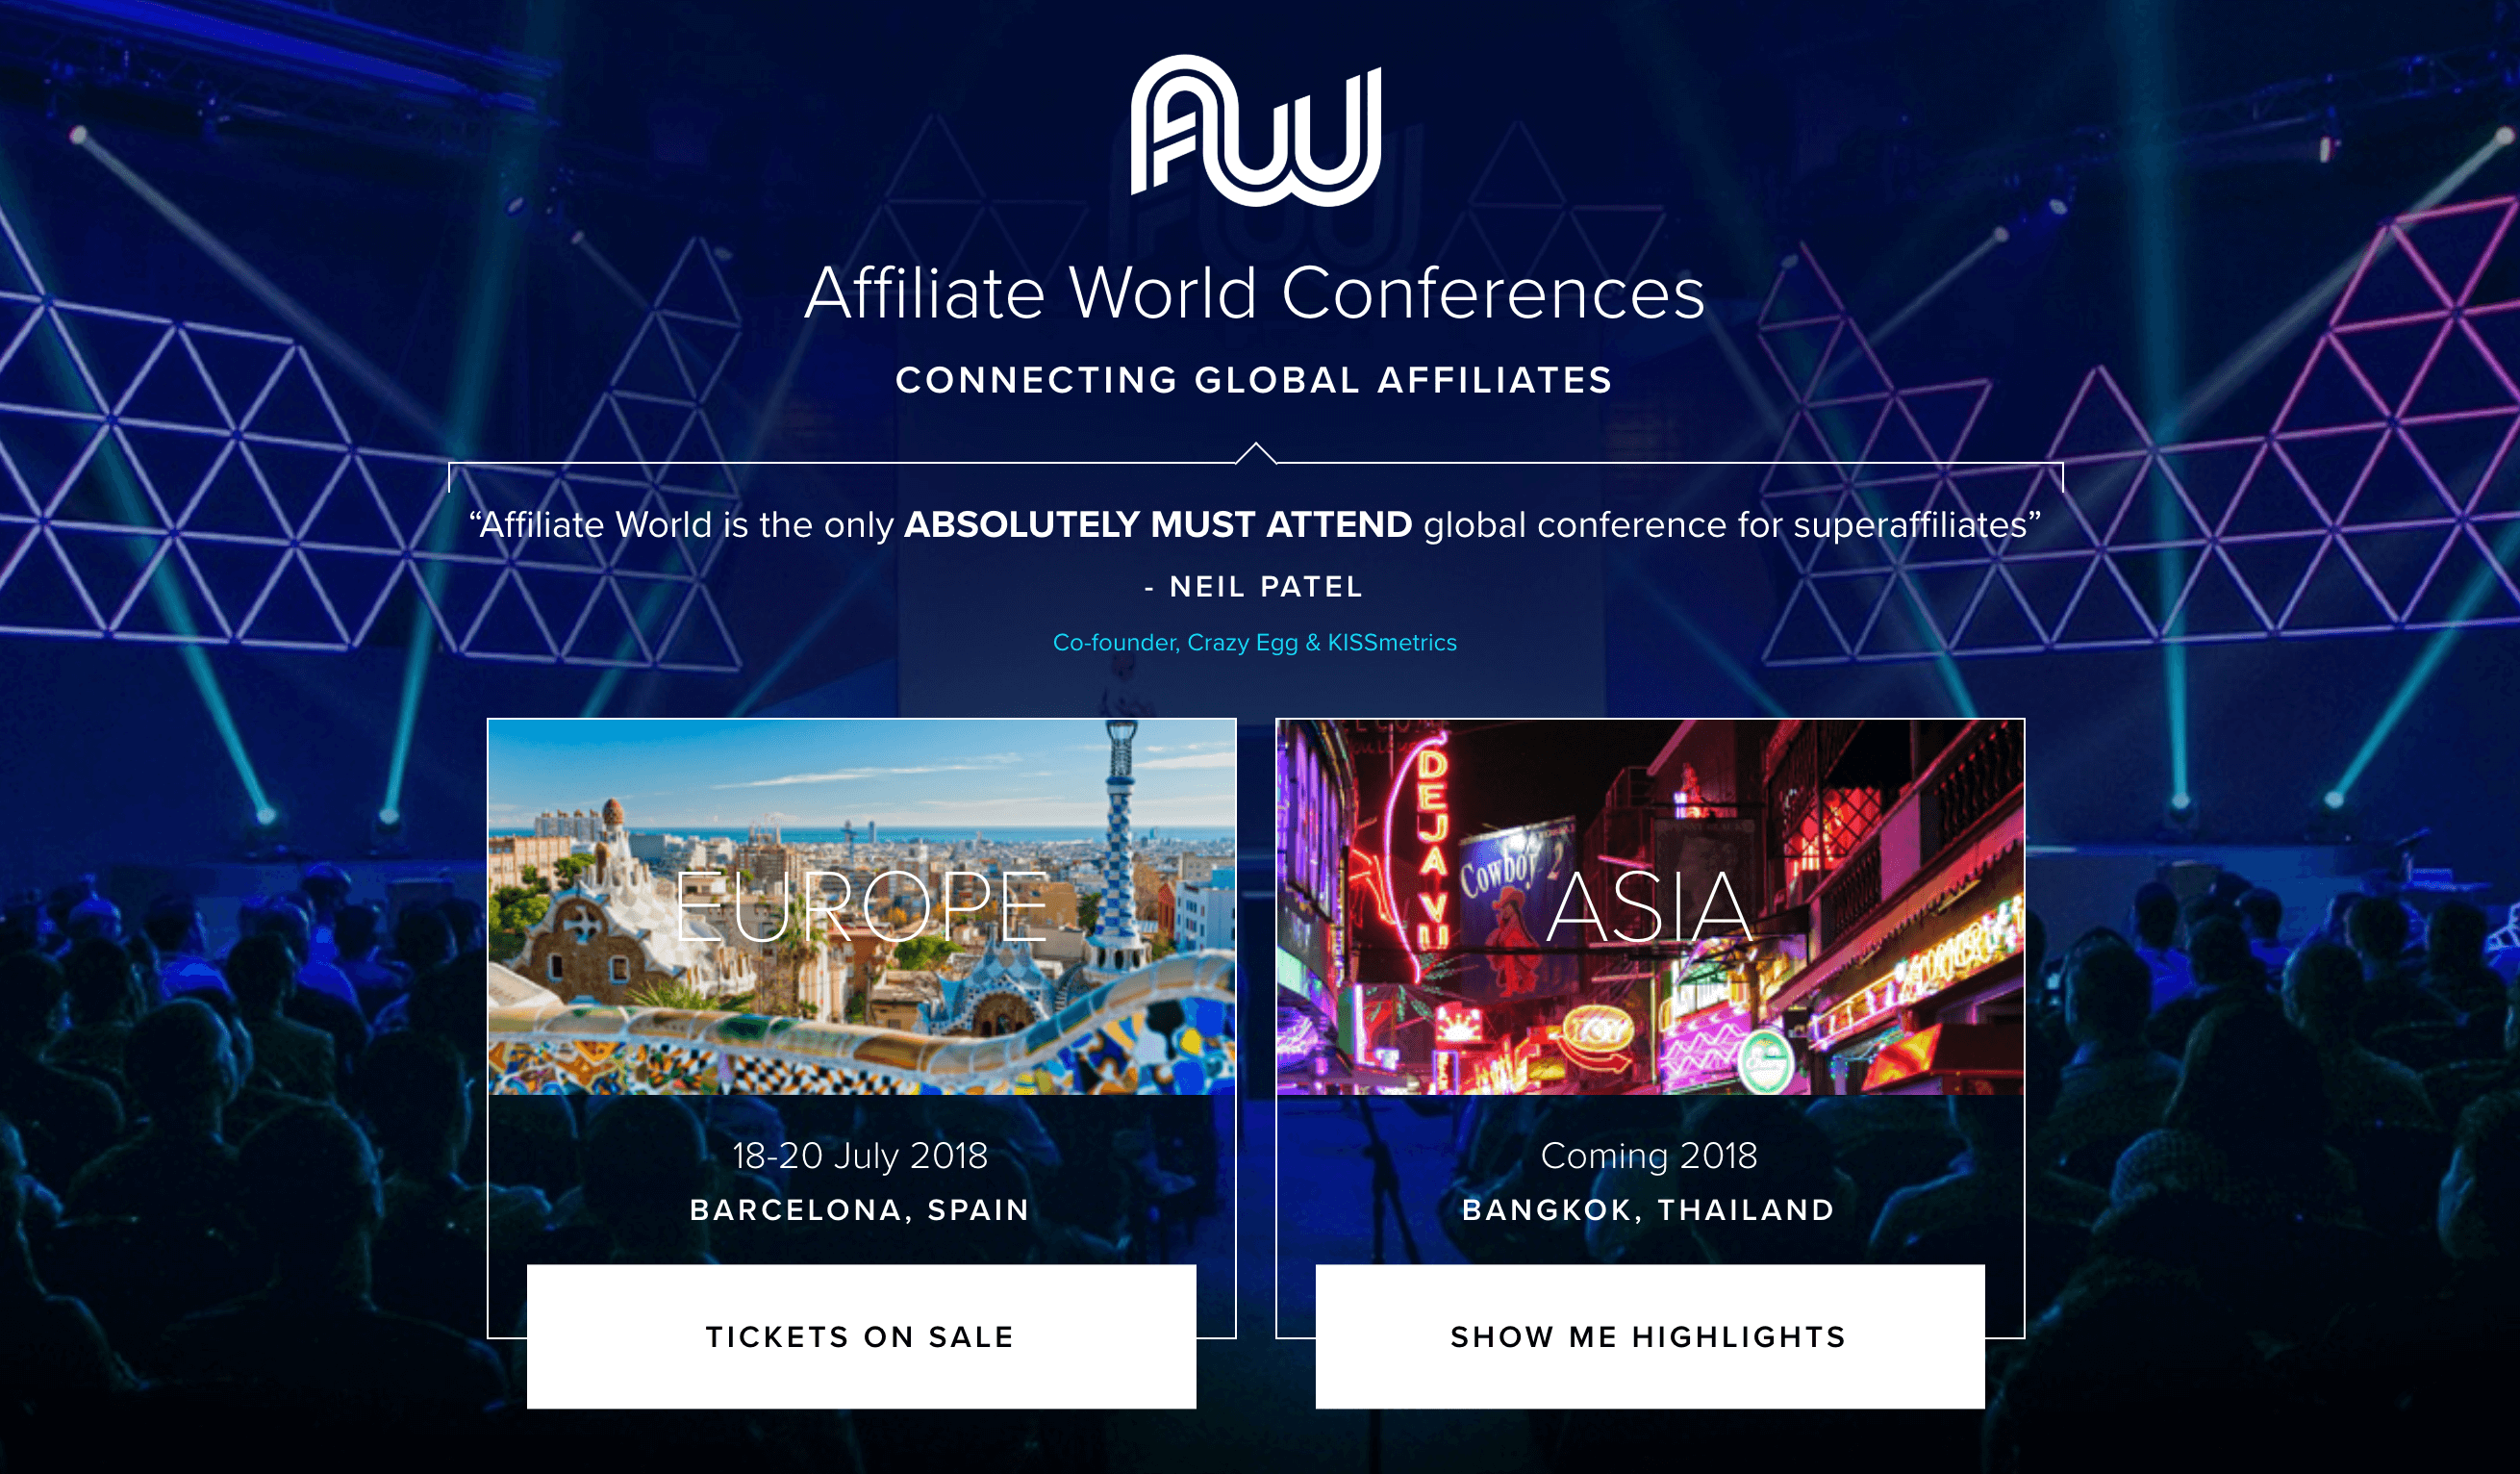 The Affiliate World conference's home page.